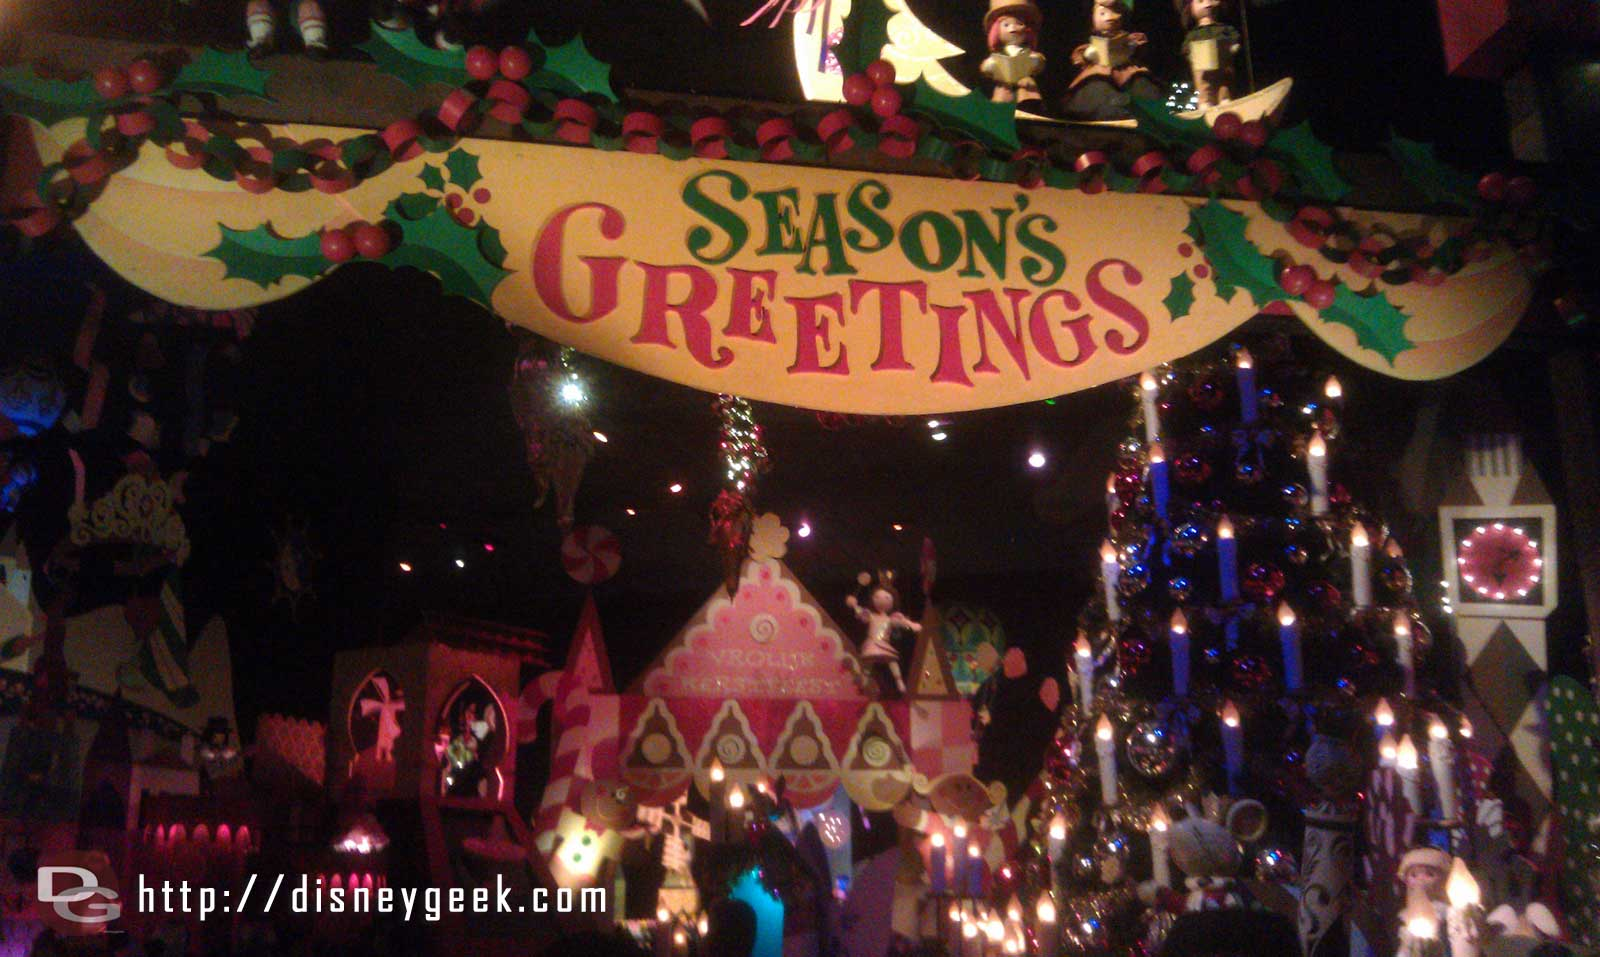 Taking a trip through Small World Holiday